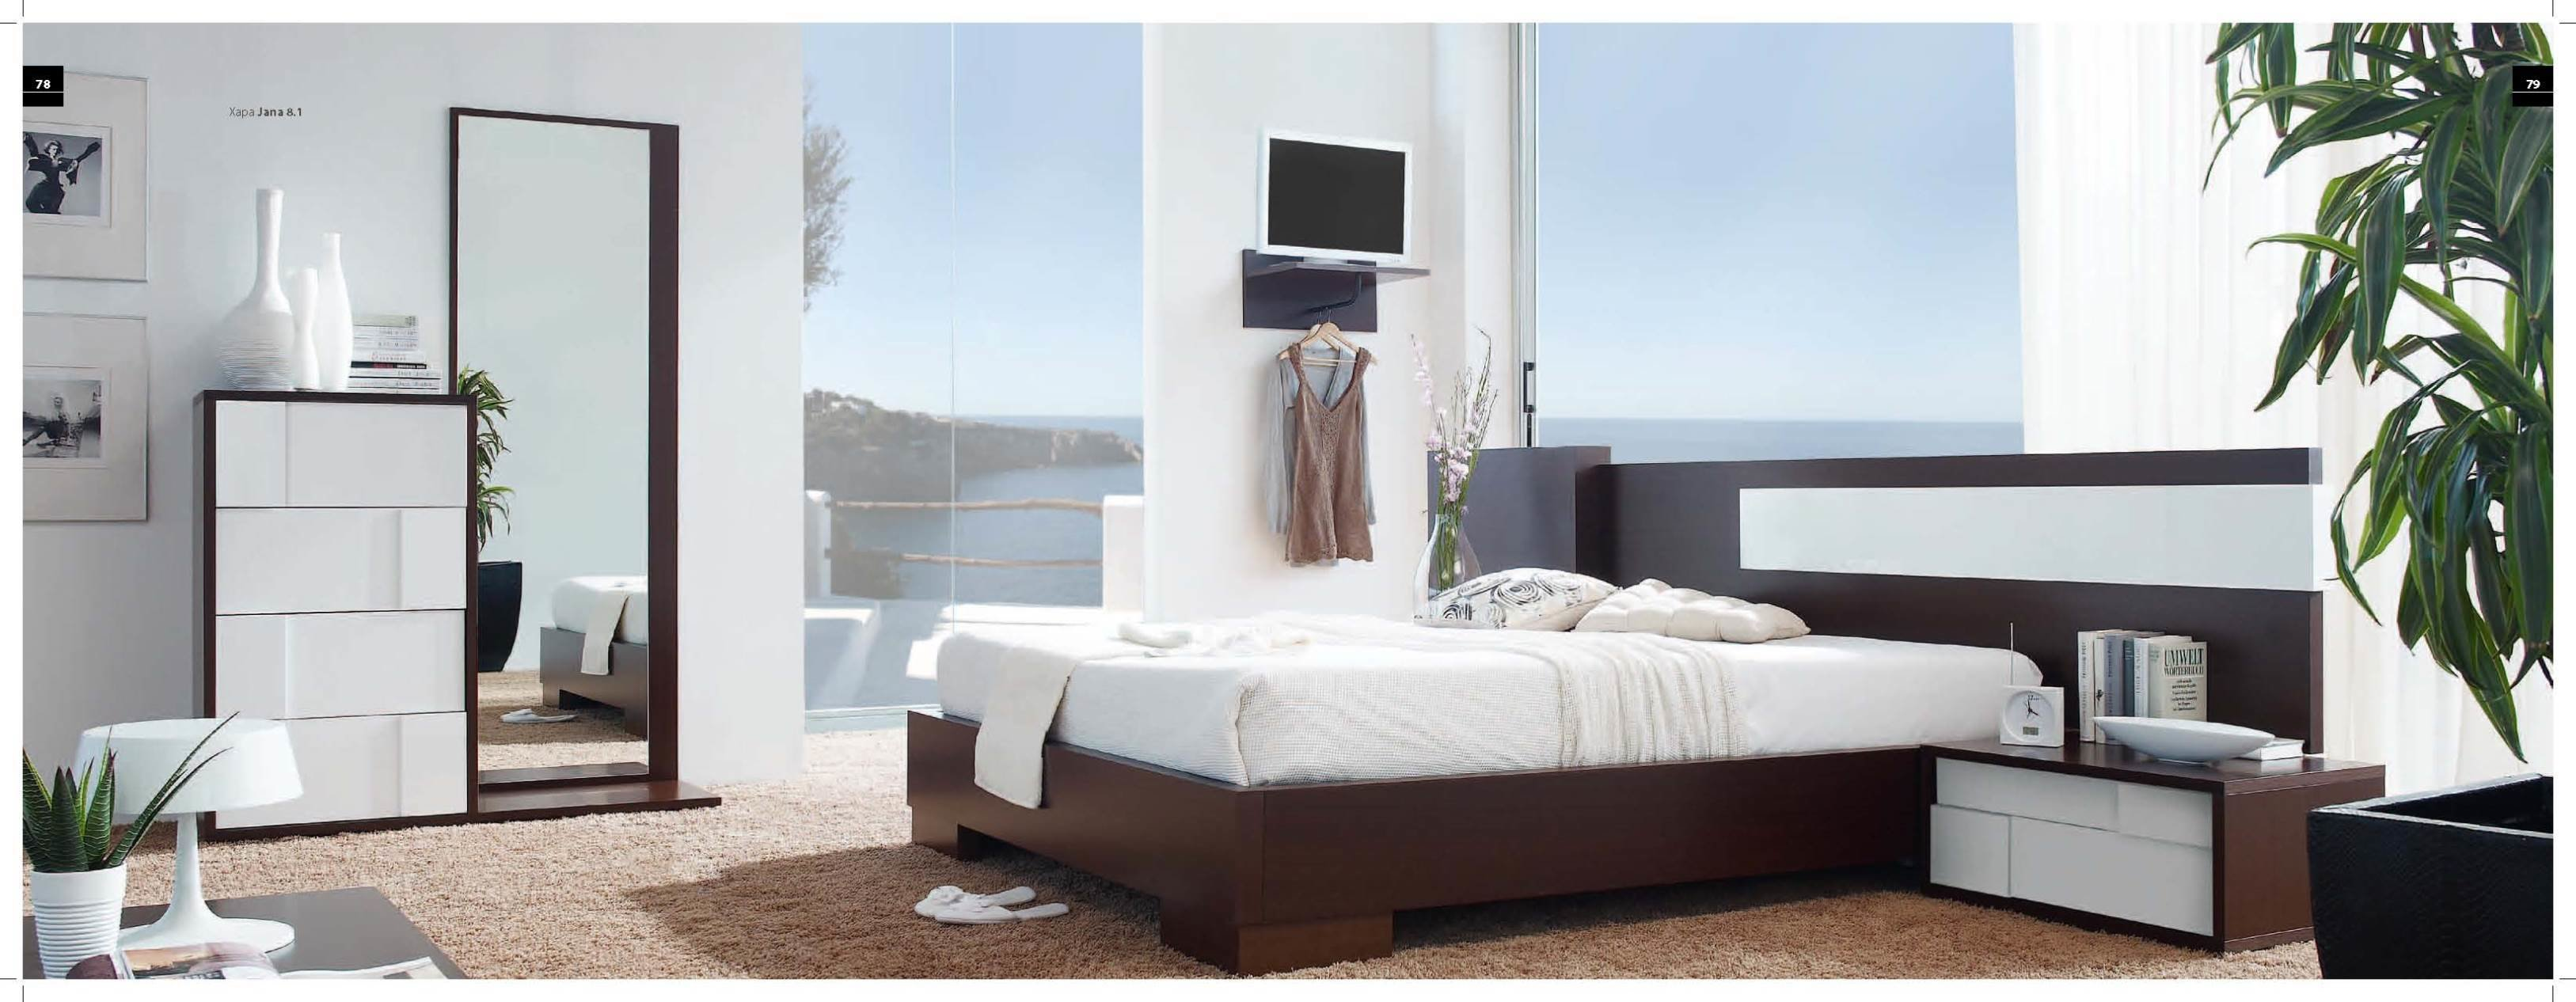 Best Solid Wood Bedroom Furniture Manufacturers Furniture Home Decor With Pictures